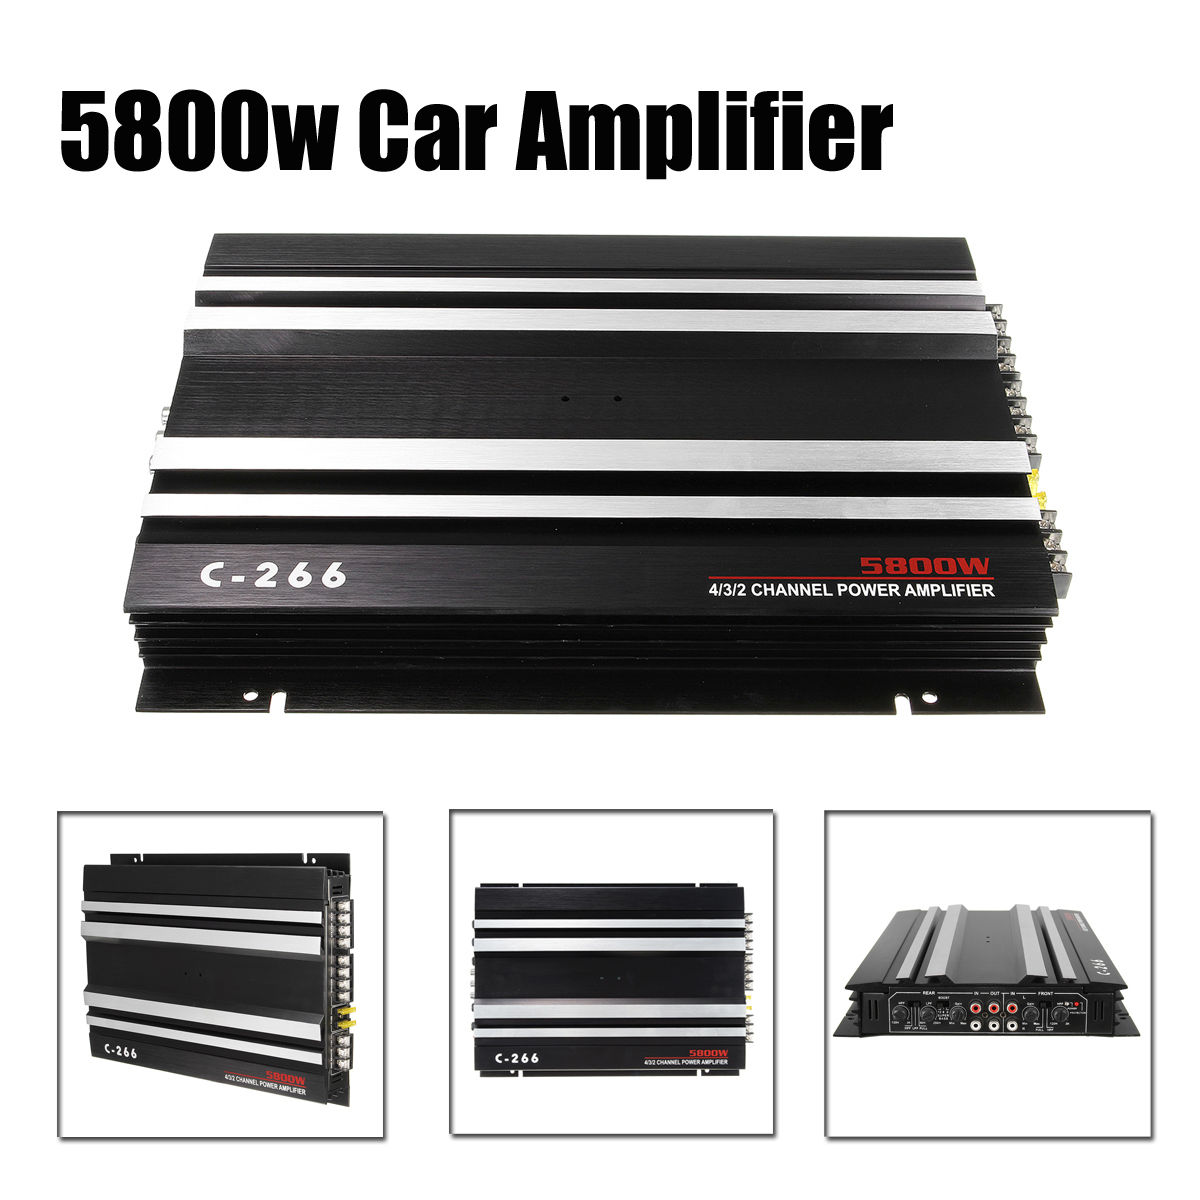 5800W 4 Channel Car Amplifier C-266 12V Aluminum Stereo Audio Amplifier 360 Dgree Sound for Home Car Auto Stereo Boat Motorcycle цена